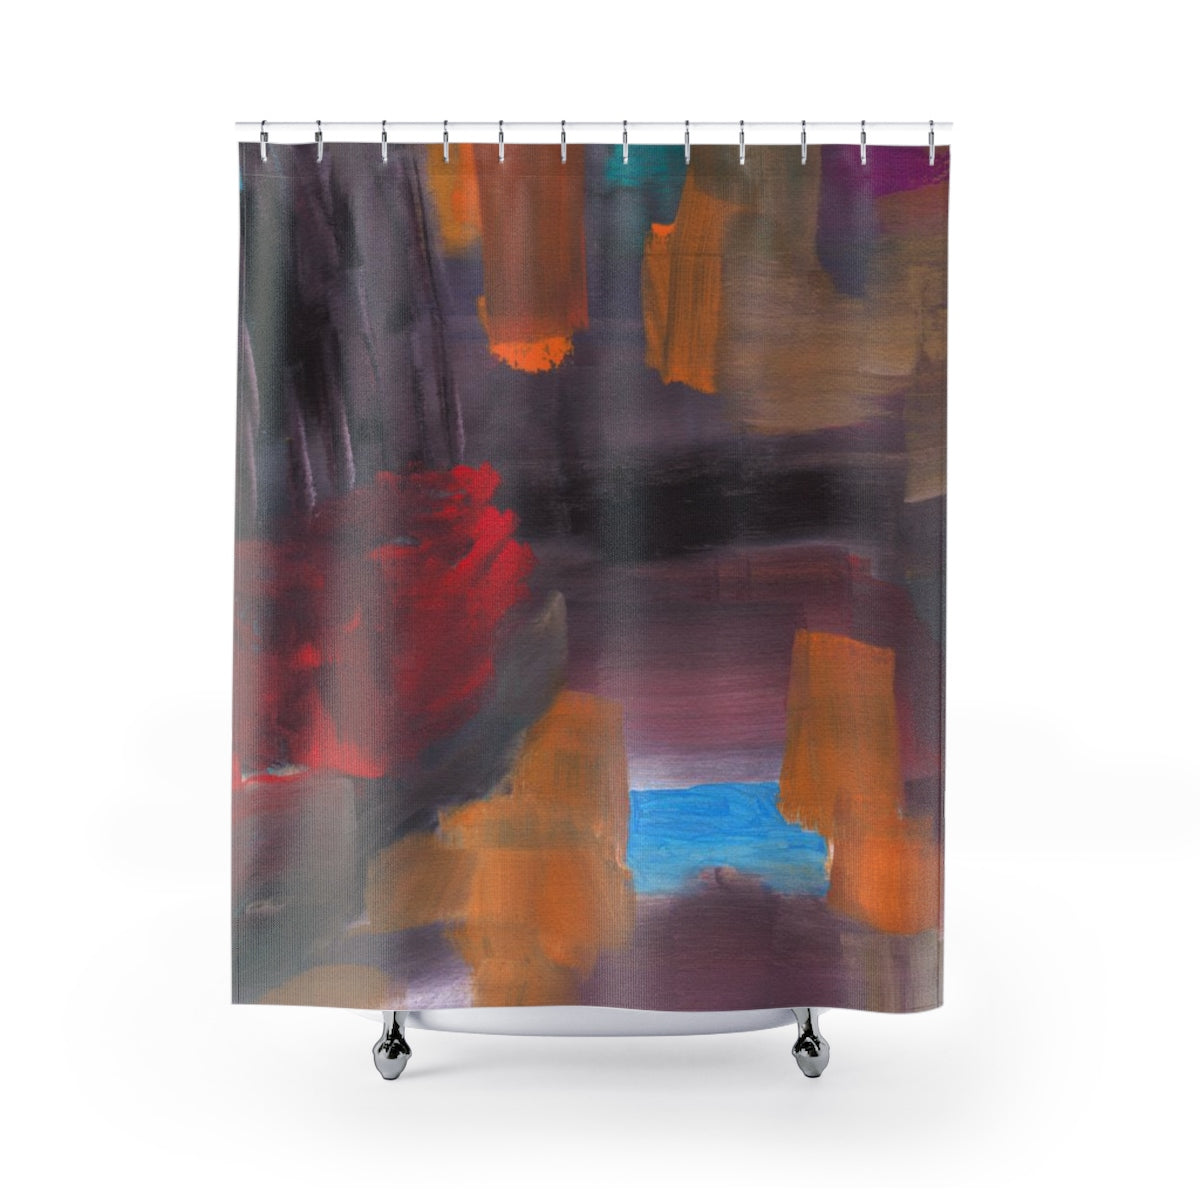 "CAVE VIEW Shower Curtain   71"" x 74"""